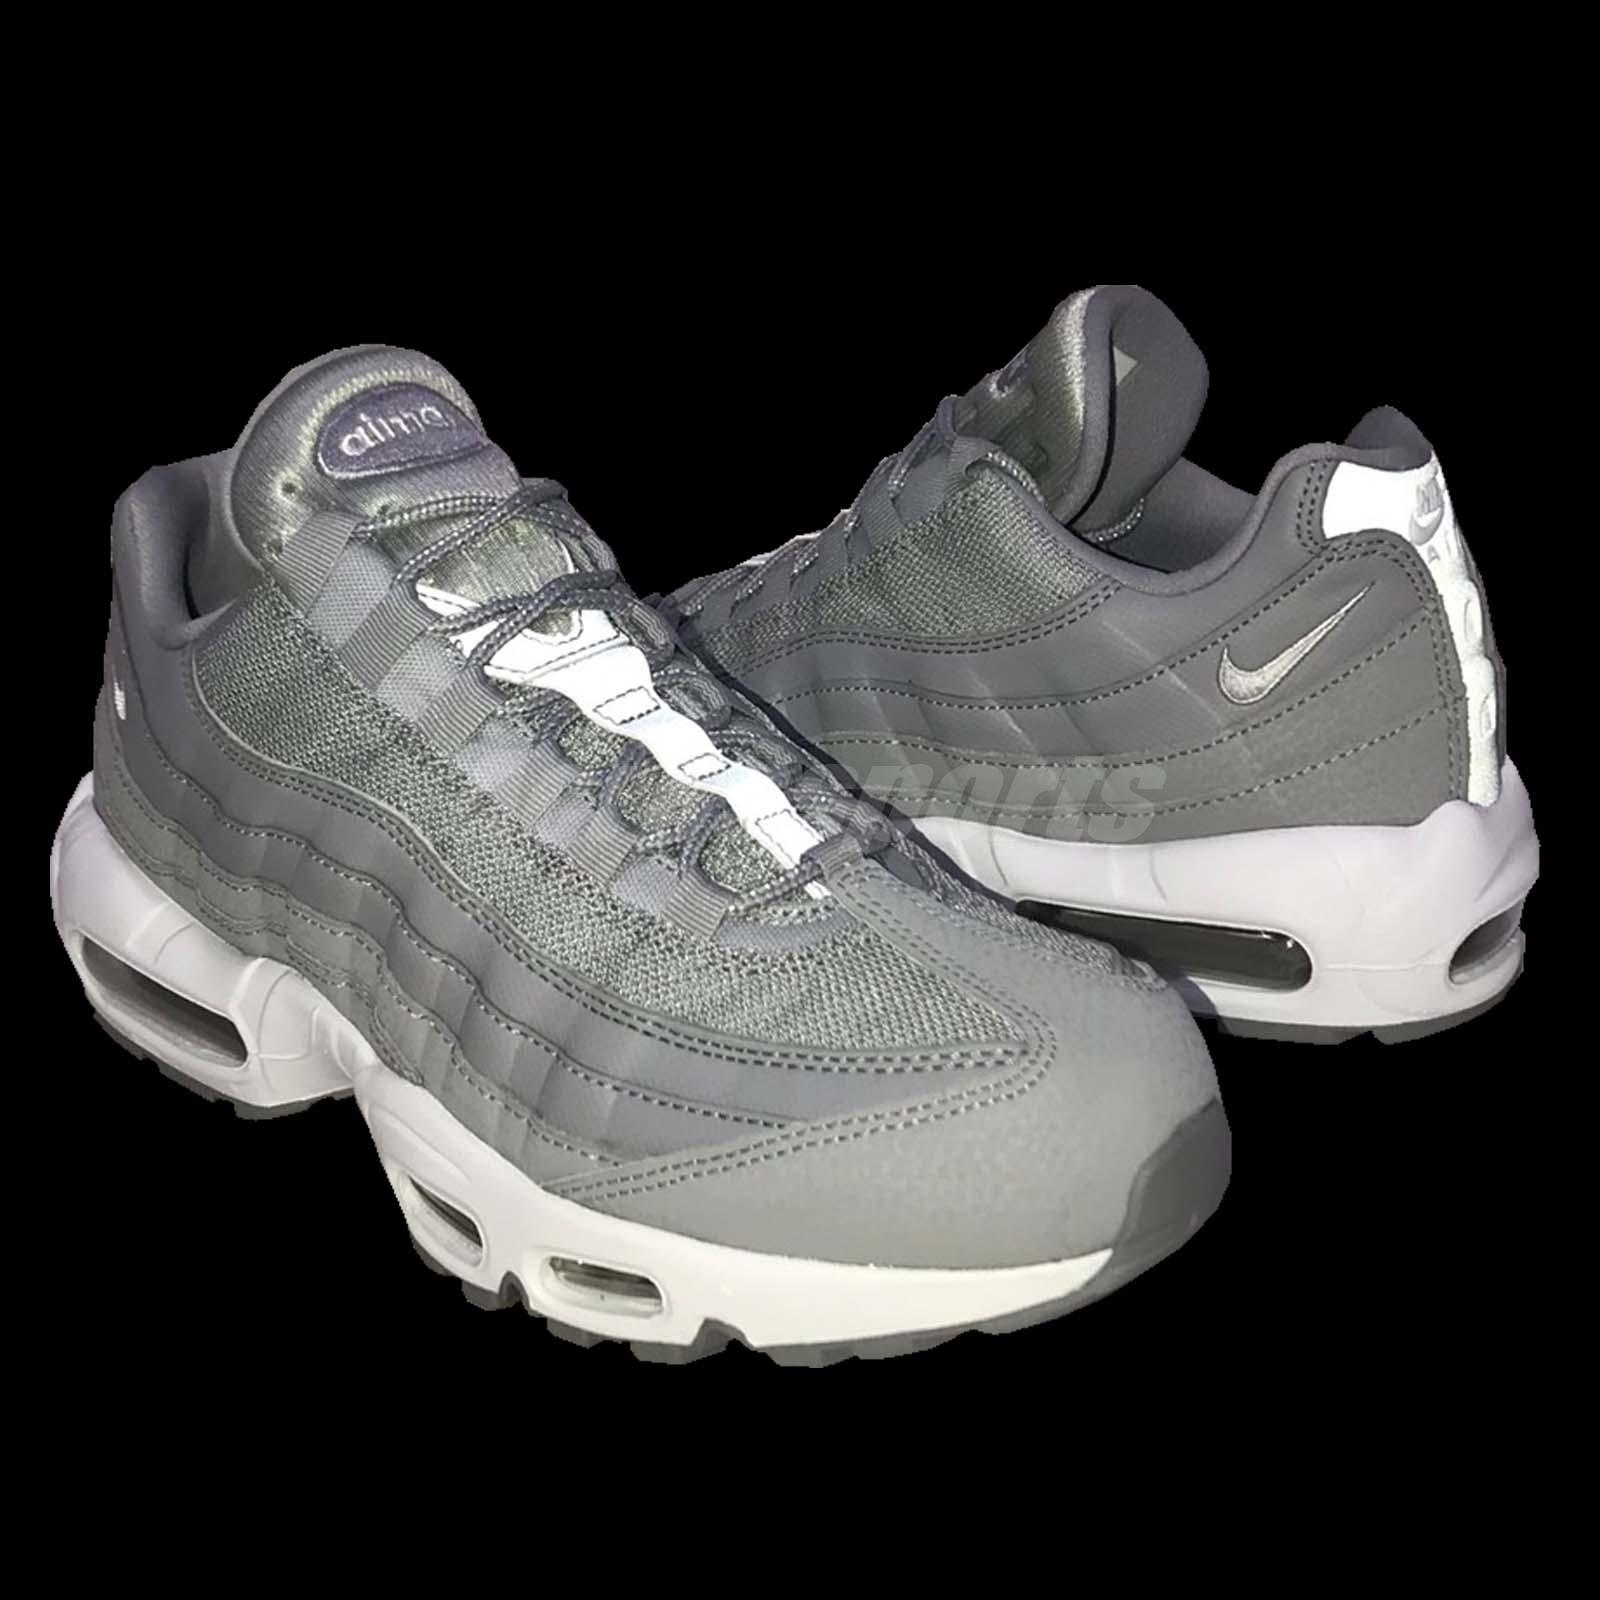 timeless design 109f8 8fe54 Nike Air Max 95 Essential Grey White Men Running Shoes Sneakers ...